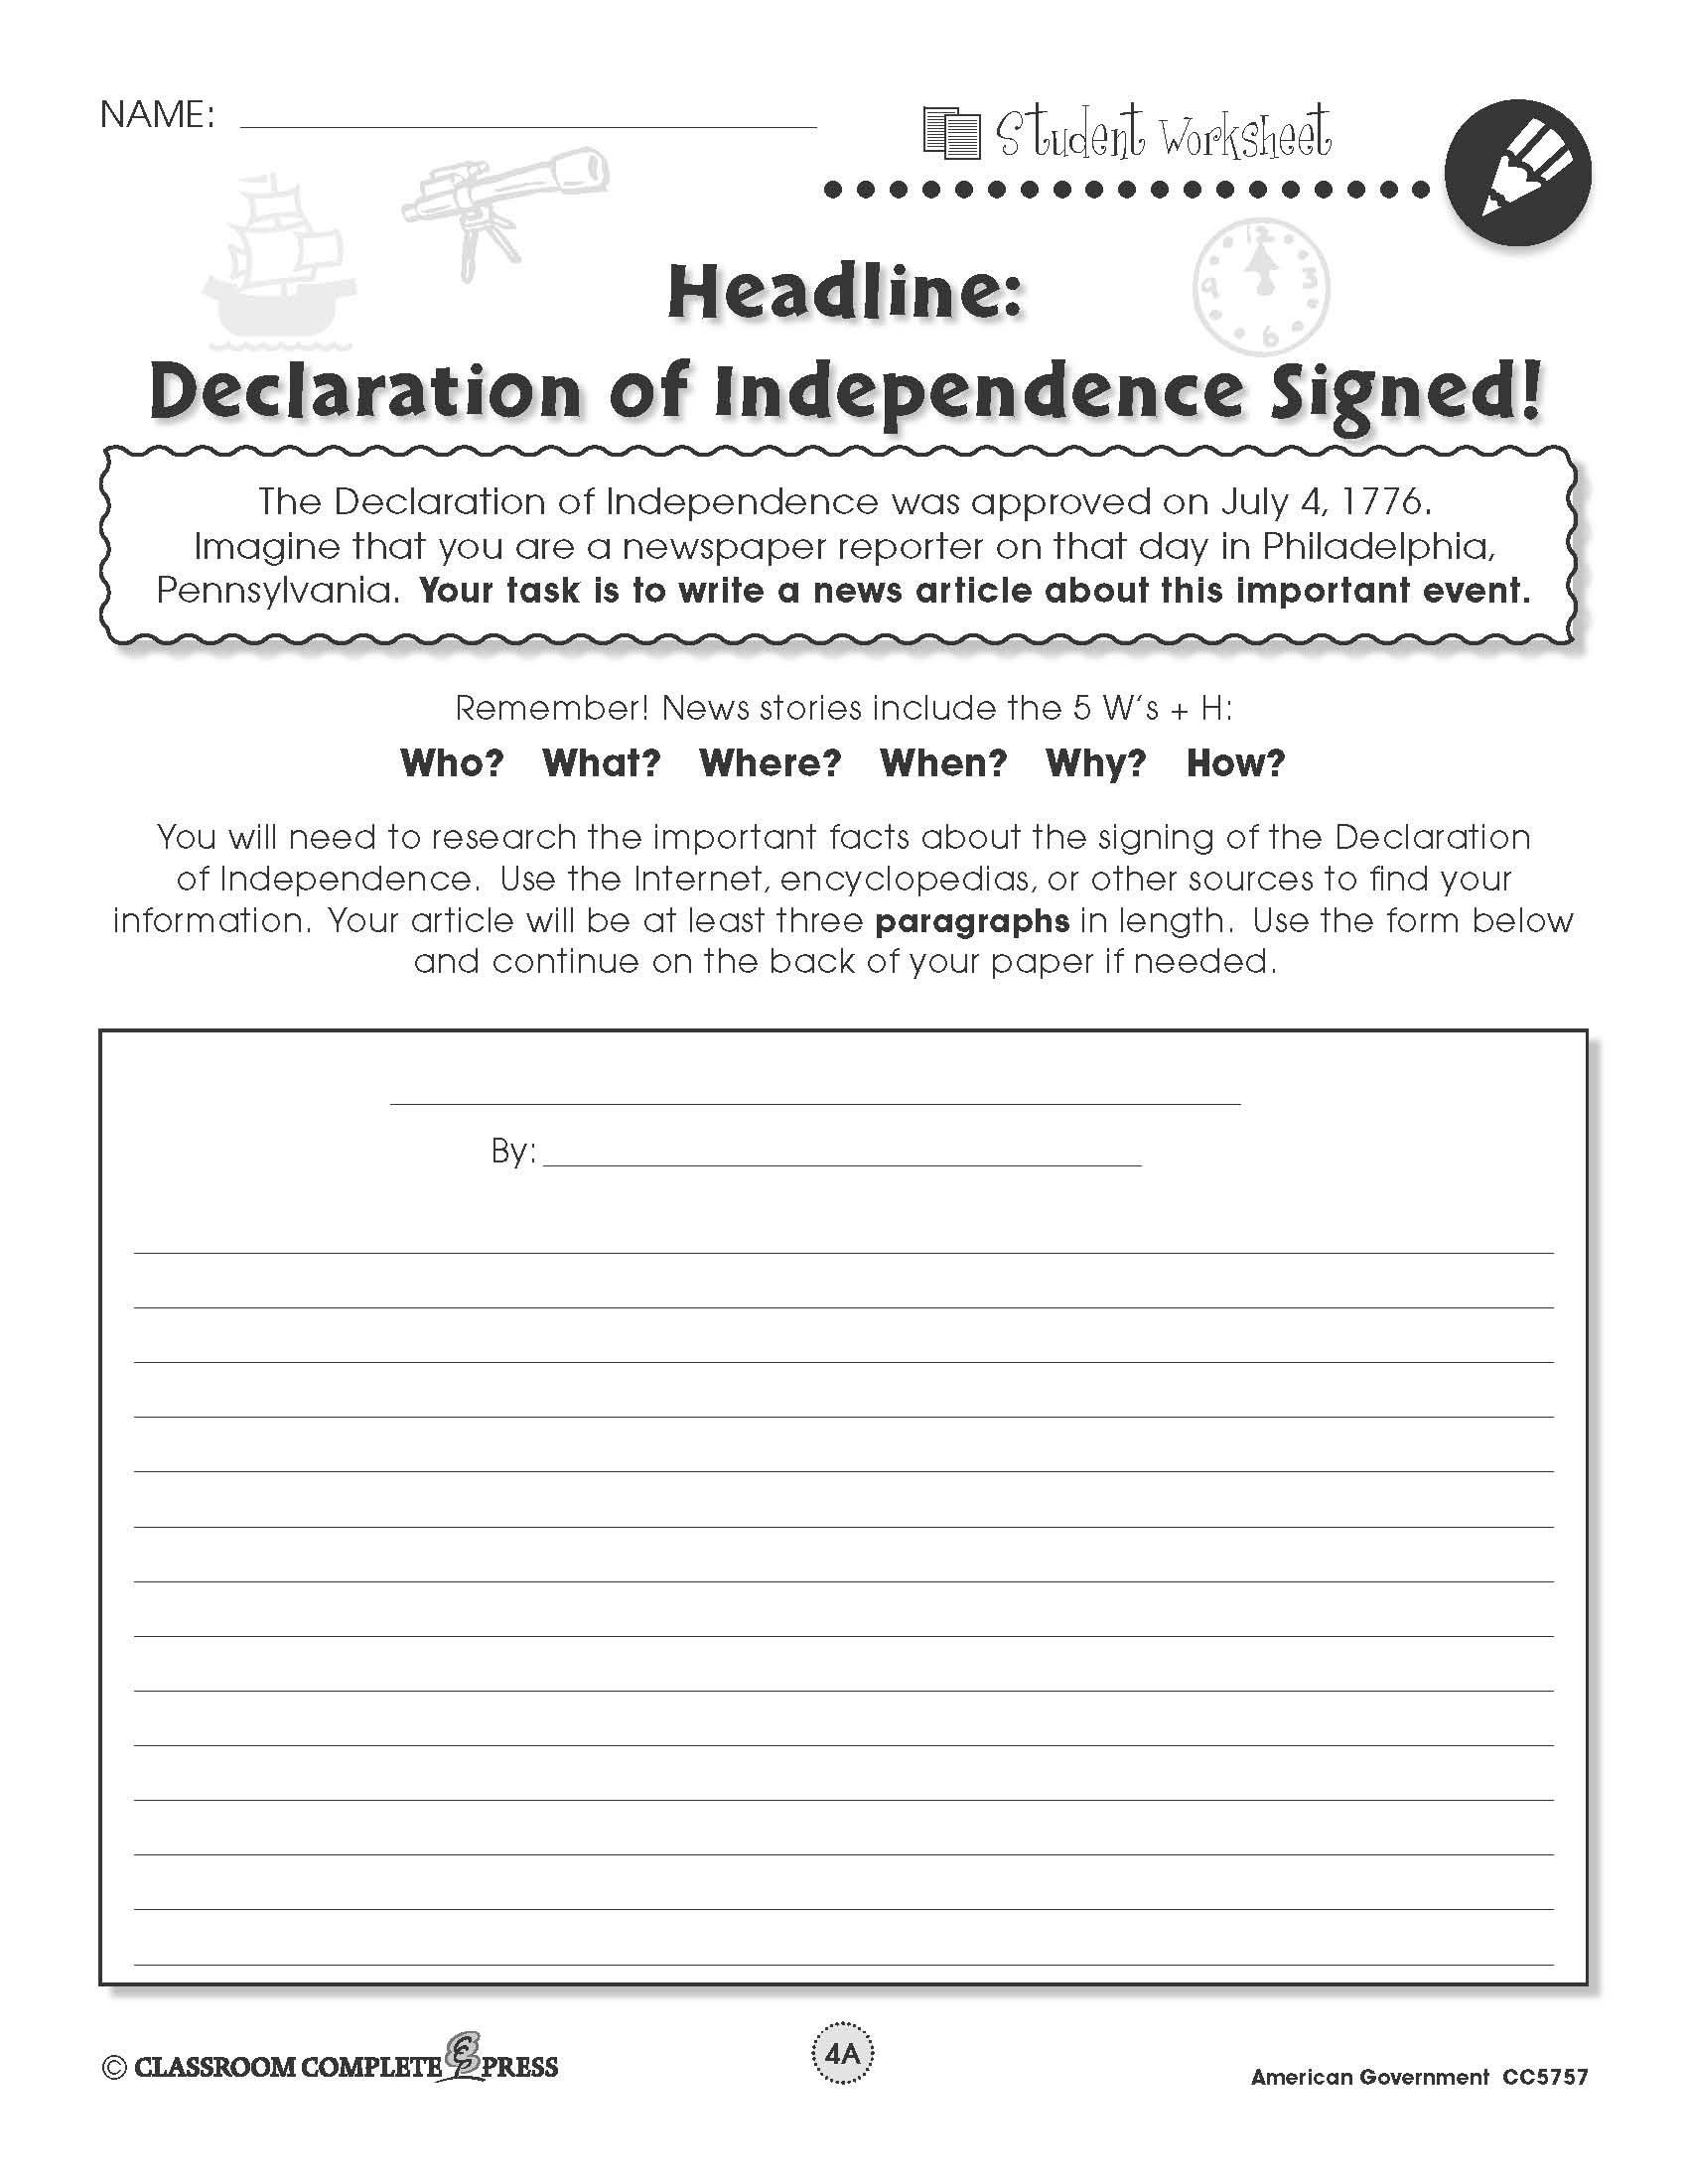 Declaration Of Independence Worksheet Answers Write A Newspaper Article About America S Signing Of the